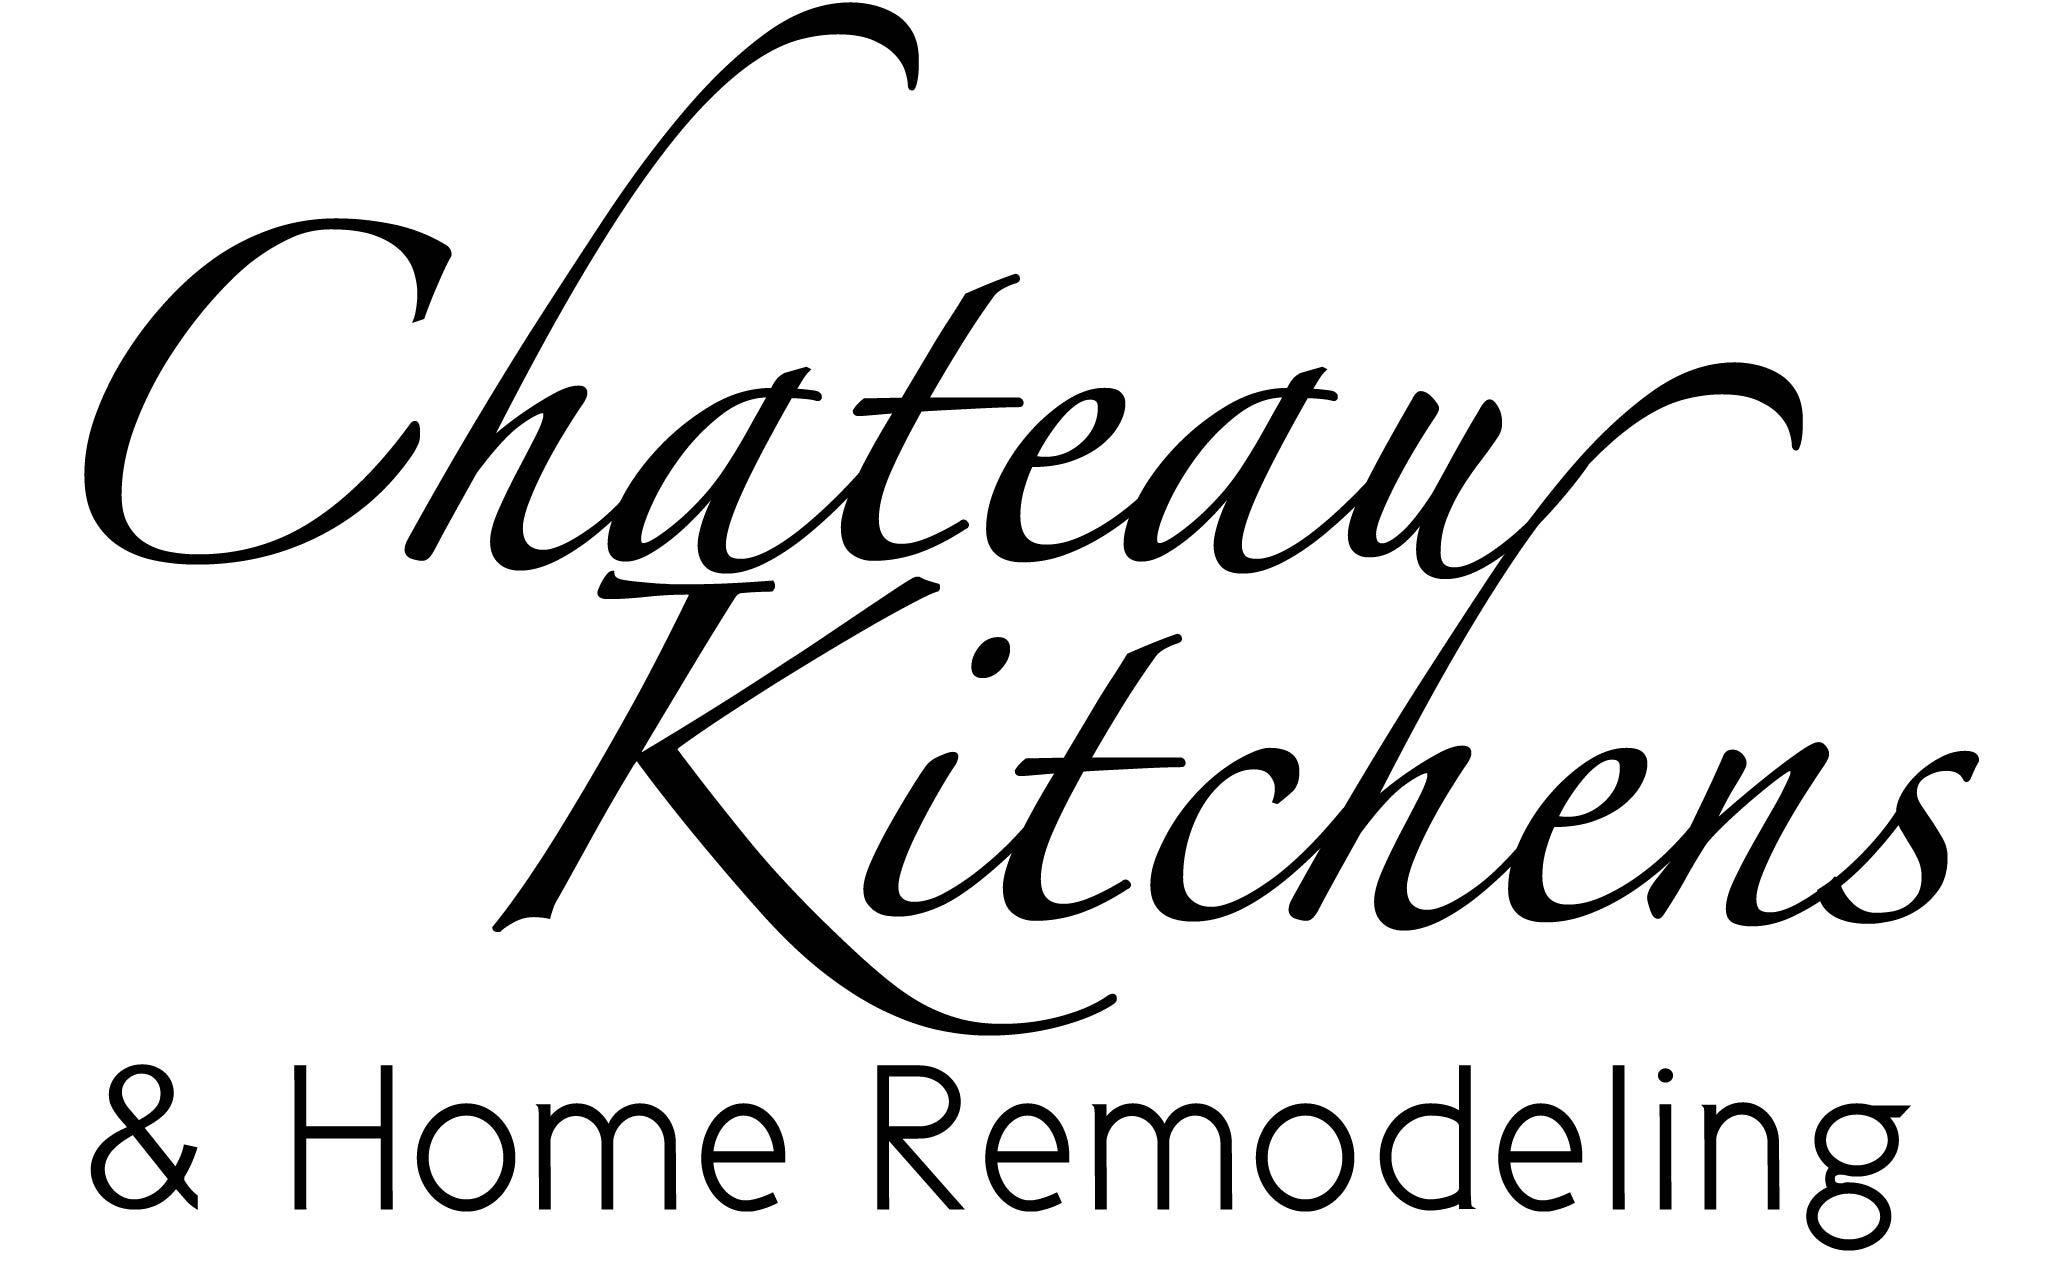 Chateau Kitchens And Home Remodeling